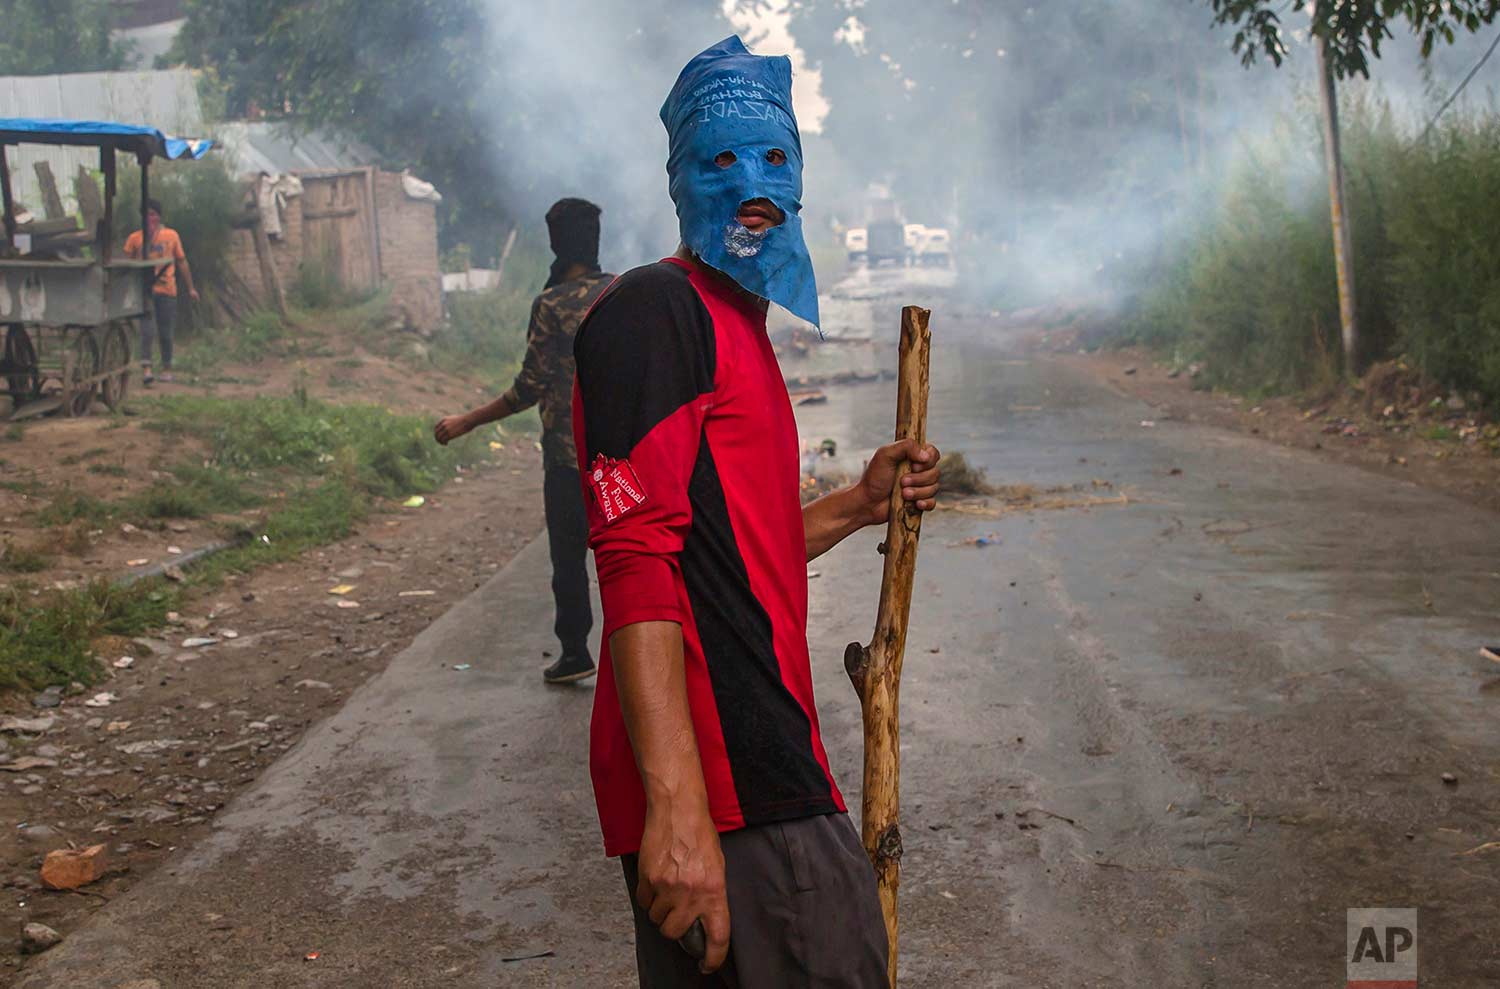 A masked villager holds a wooden stick and stones during a protest following the funeral procession of Akeel Ahmed Bhat, a teenage boy in Haal village, about 47 kilometers (29 miles) south of Srinagar, Indian controlled Kashmir, Wednesday, Aug. 2, 2017. (AP Photo/Dar Yasin)